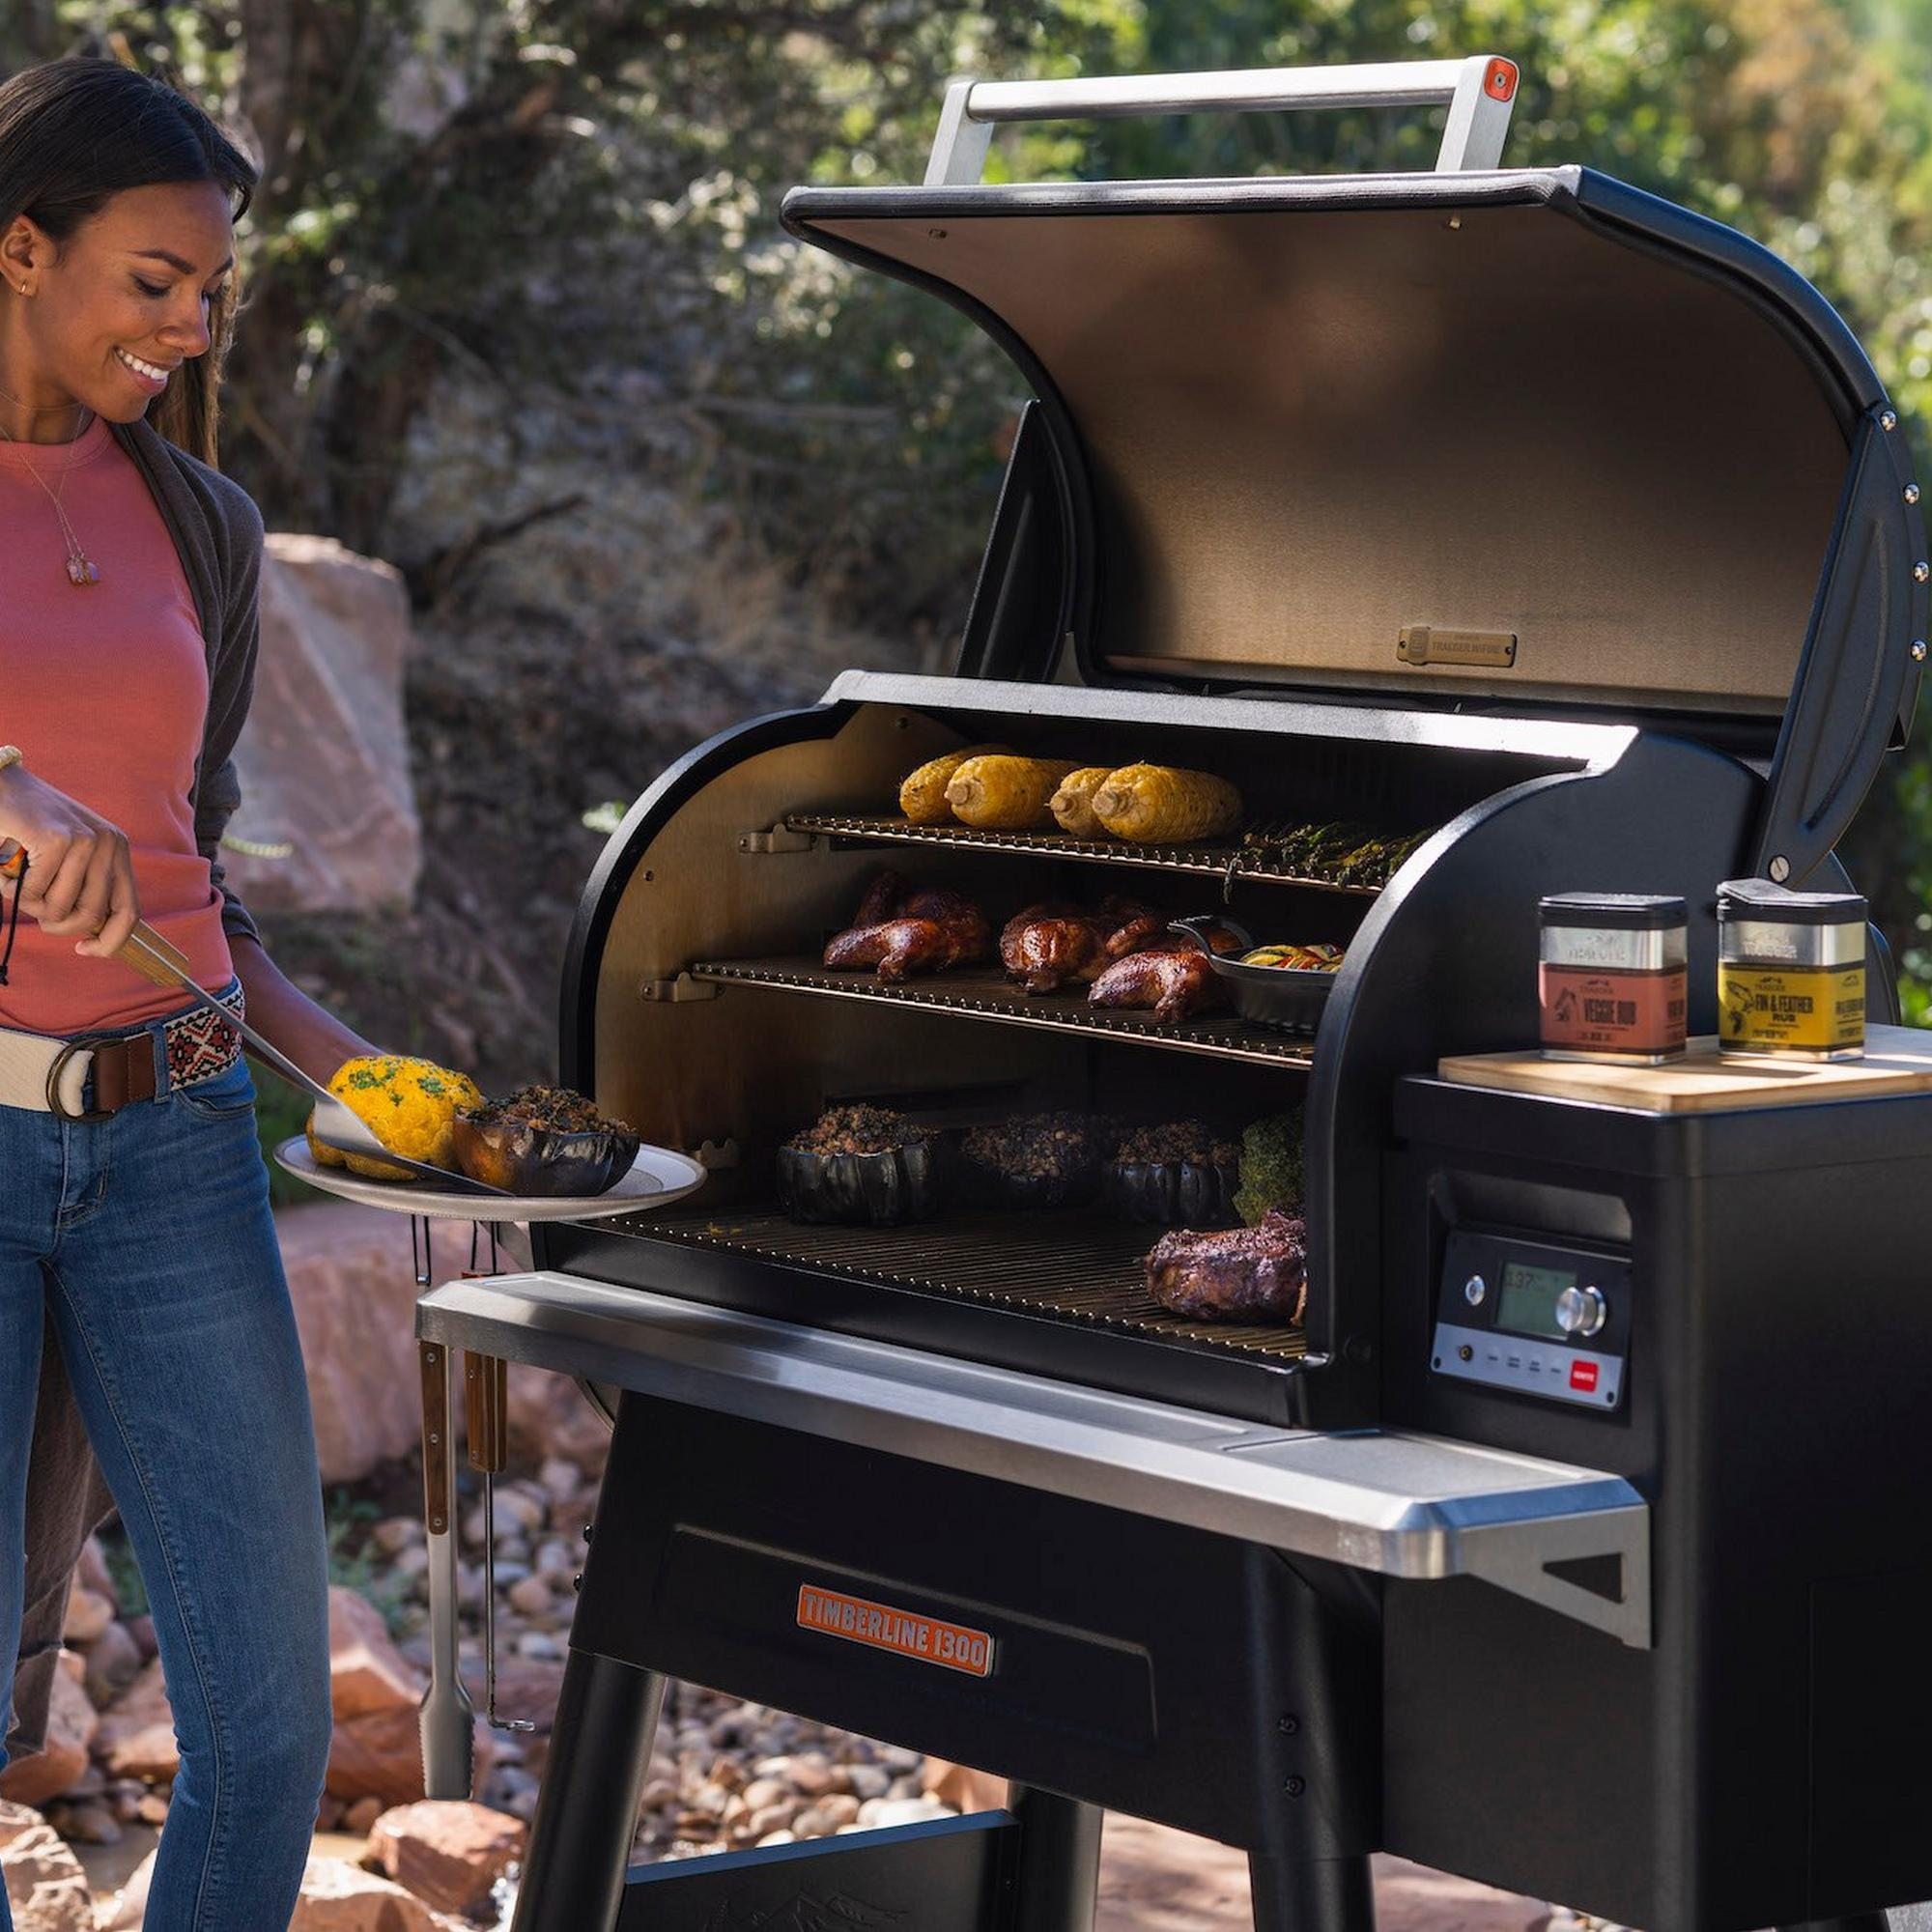 Timberline_1300_Grill_Series_Lifestyle